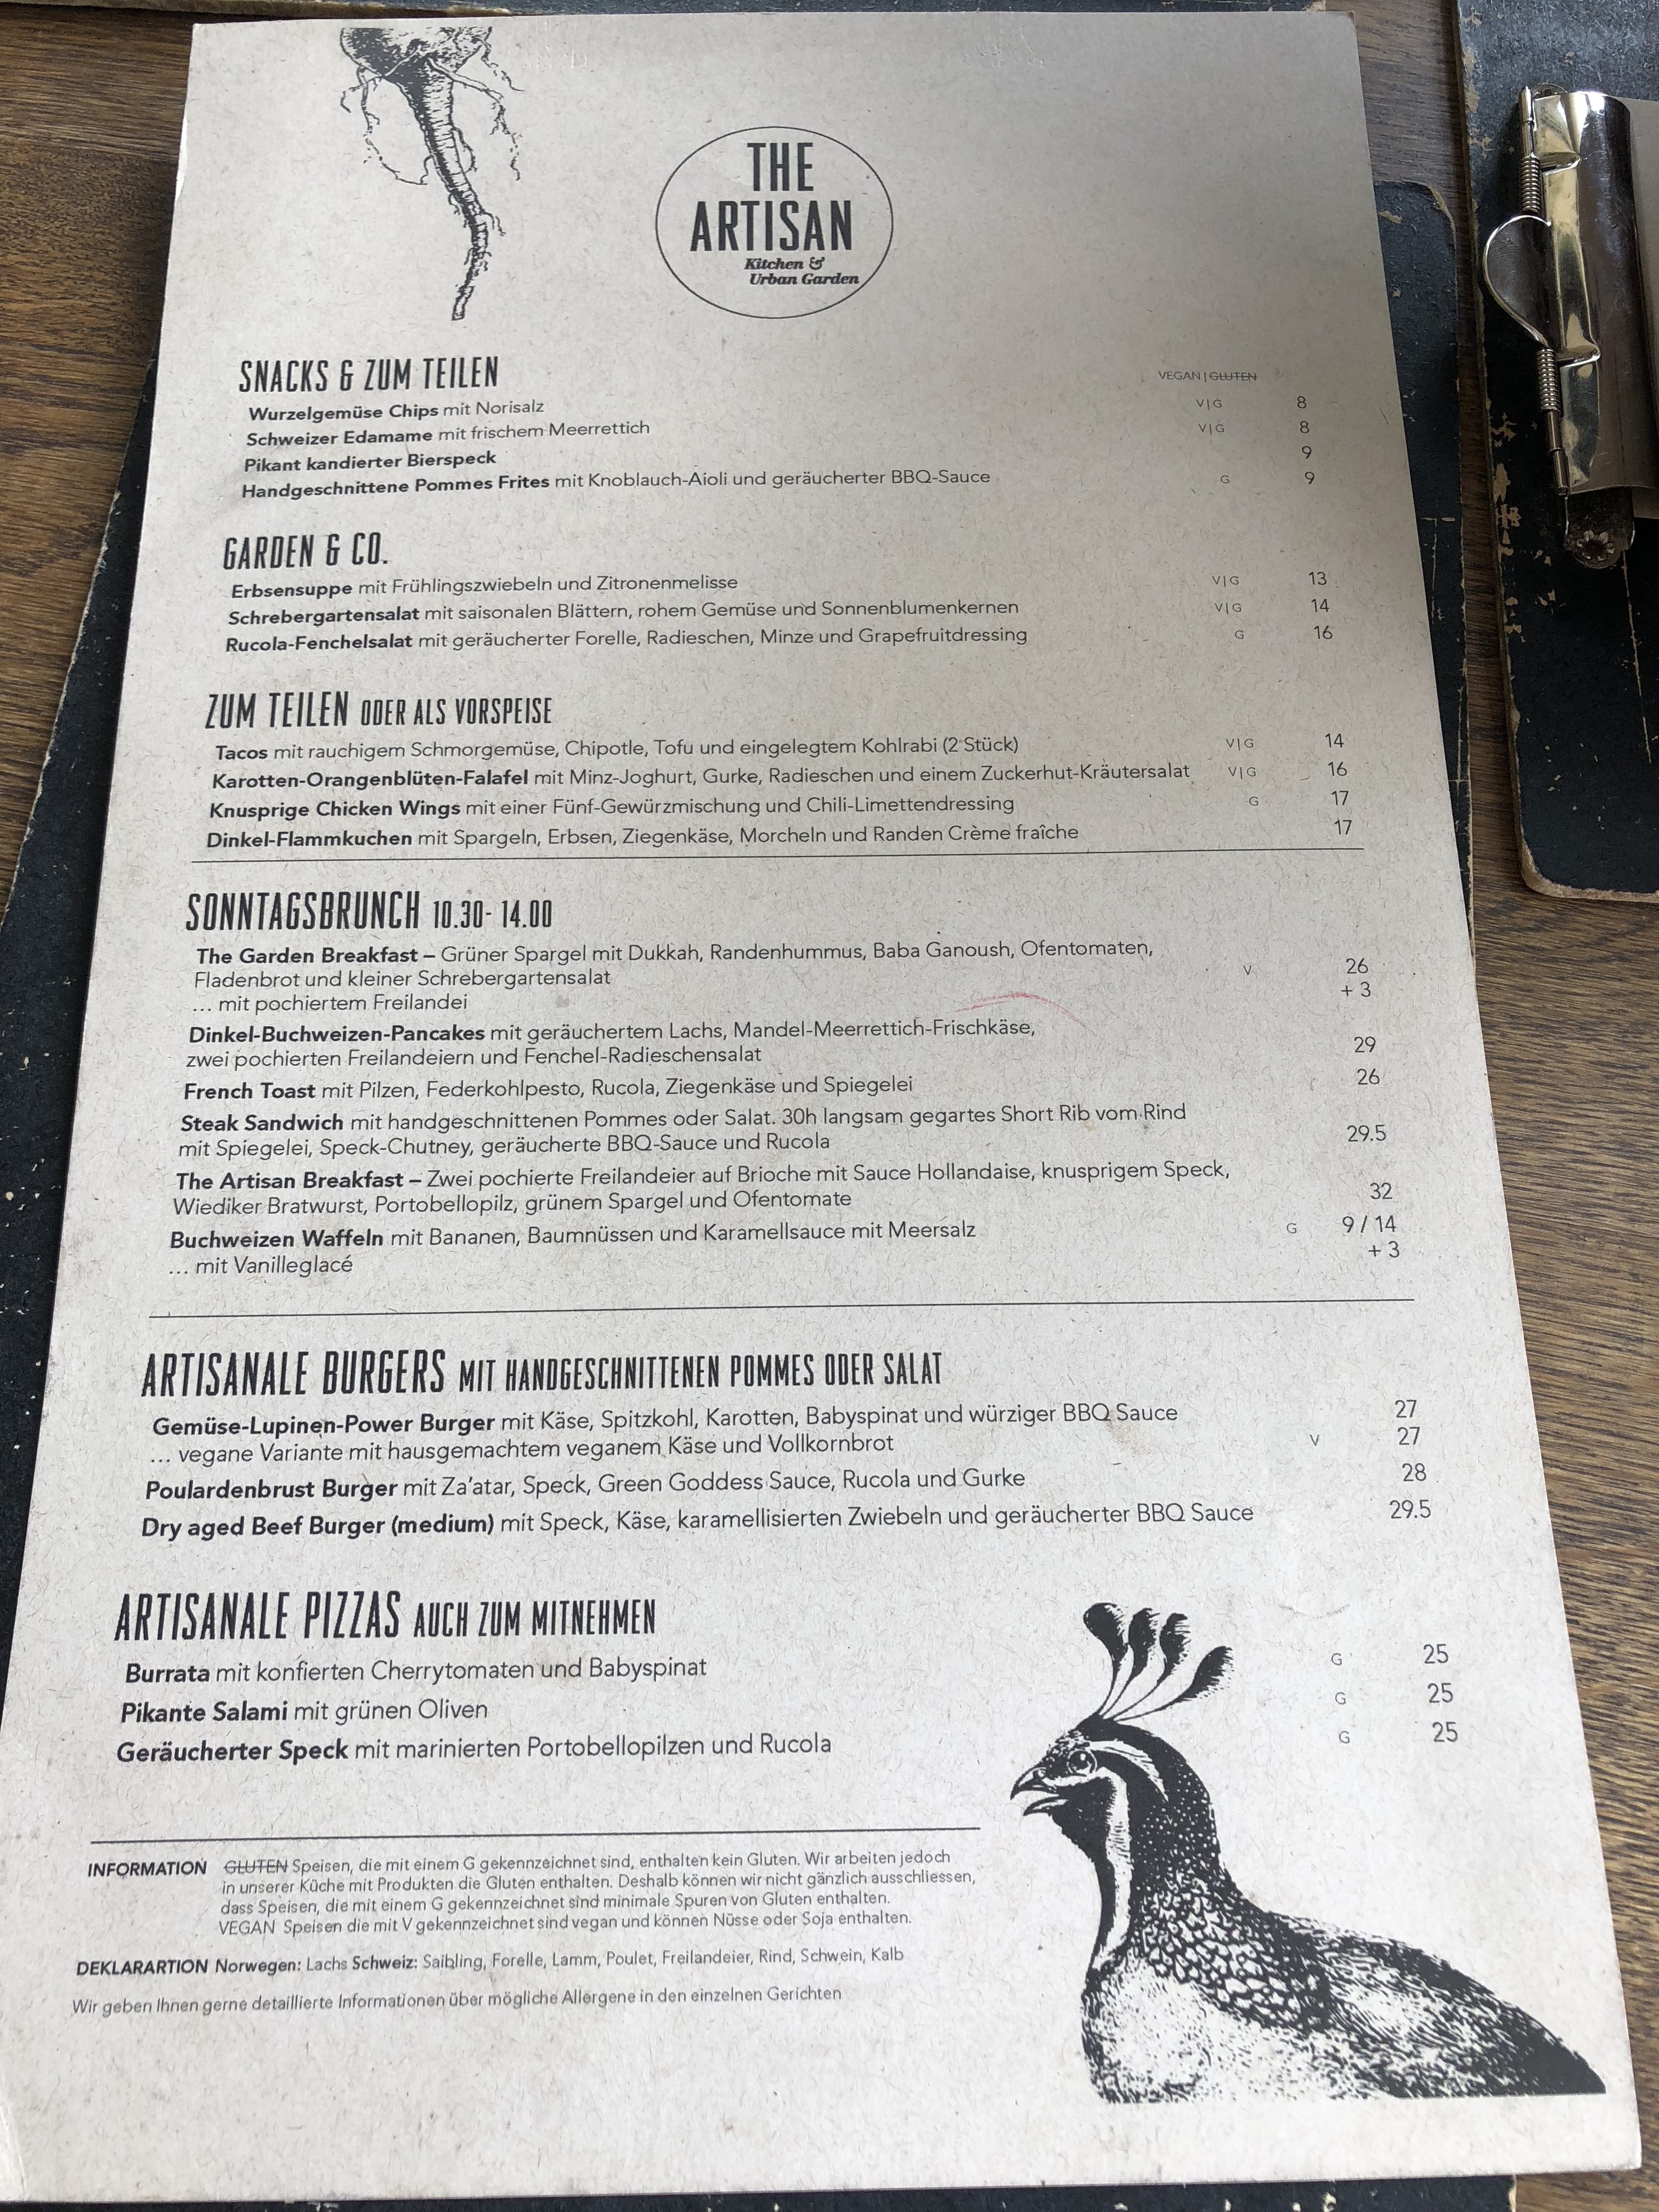 The Artisan Zurich Menu